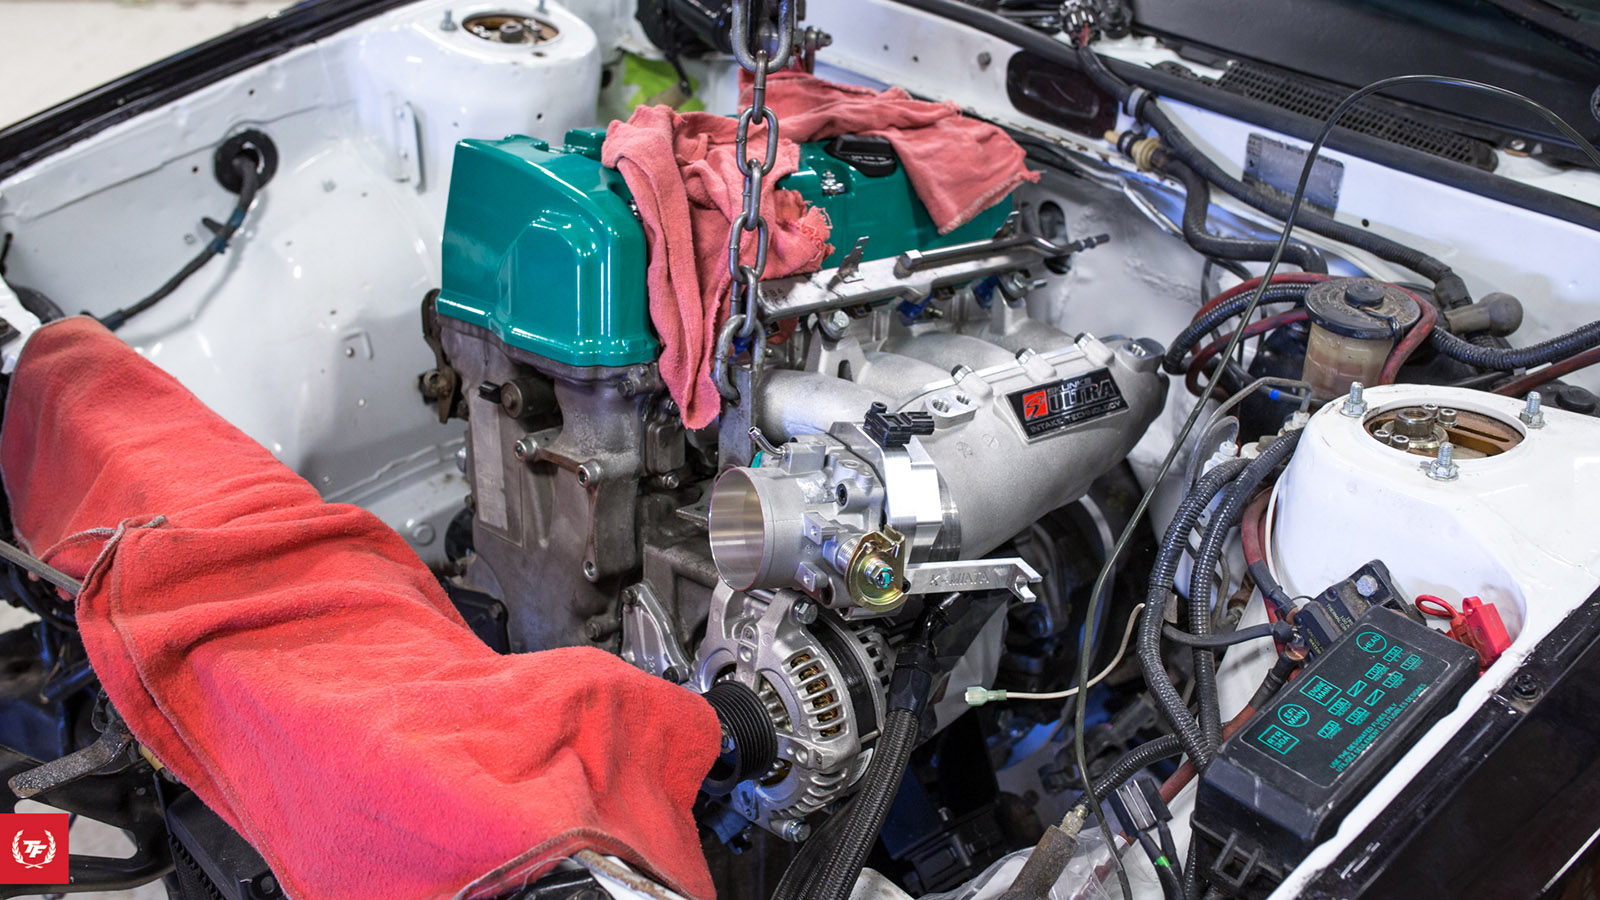 Swapping A K24 Into Ae86 Part 1 Engine Swap Depot Vtec K Series Wiring Harness For Mini Conversion Which Will Allow The Hondata Kpro Talk To Through Factory They Also Share Oil Pan And Crossmember Needed Some